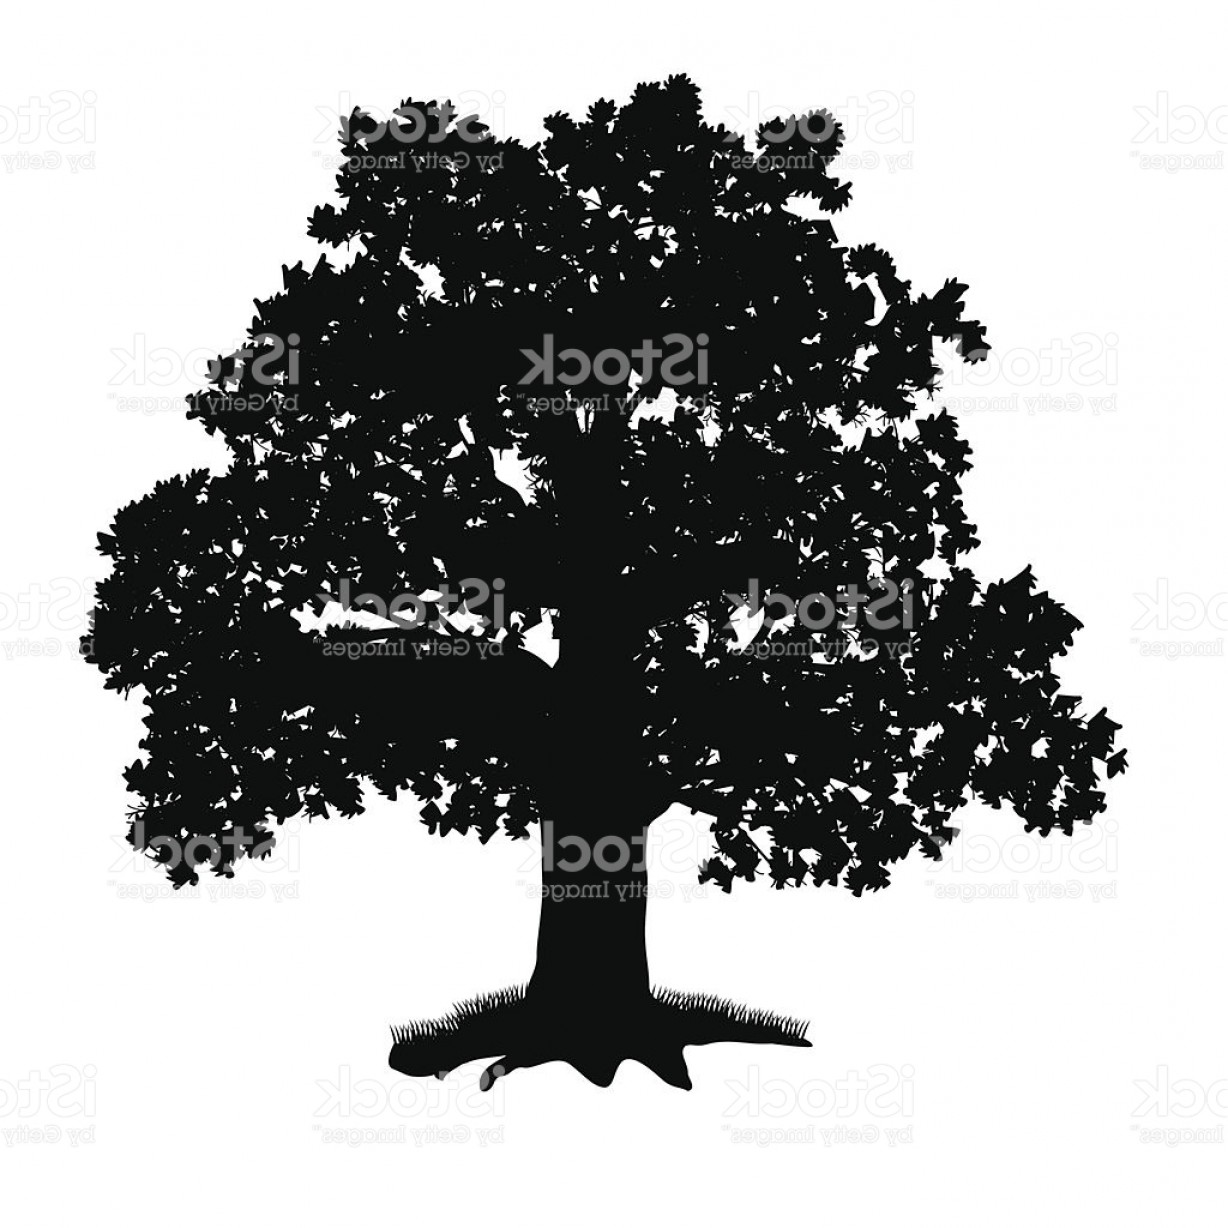 Oak Tree Silhouette Vector Graphics: Oak Tree Silhouette With Leaves Gm